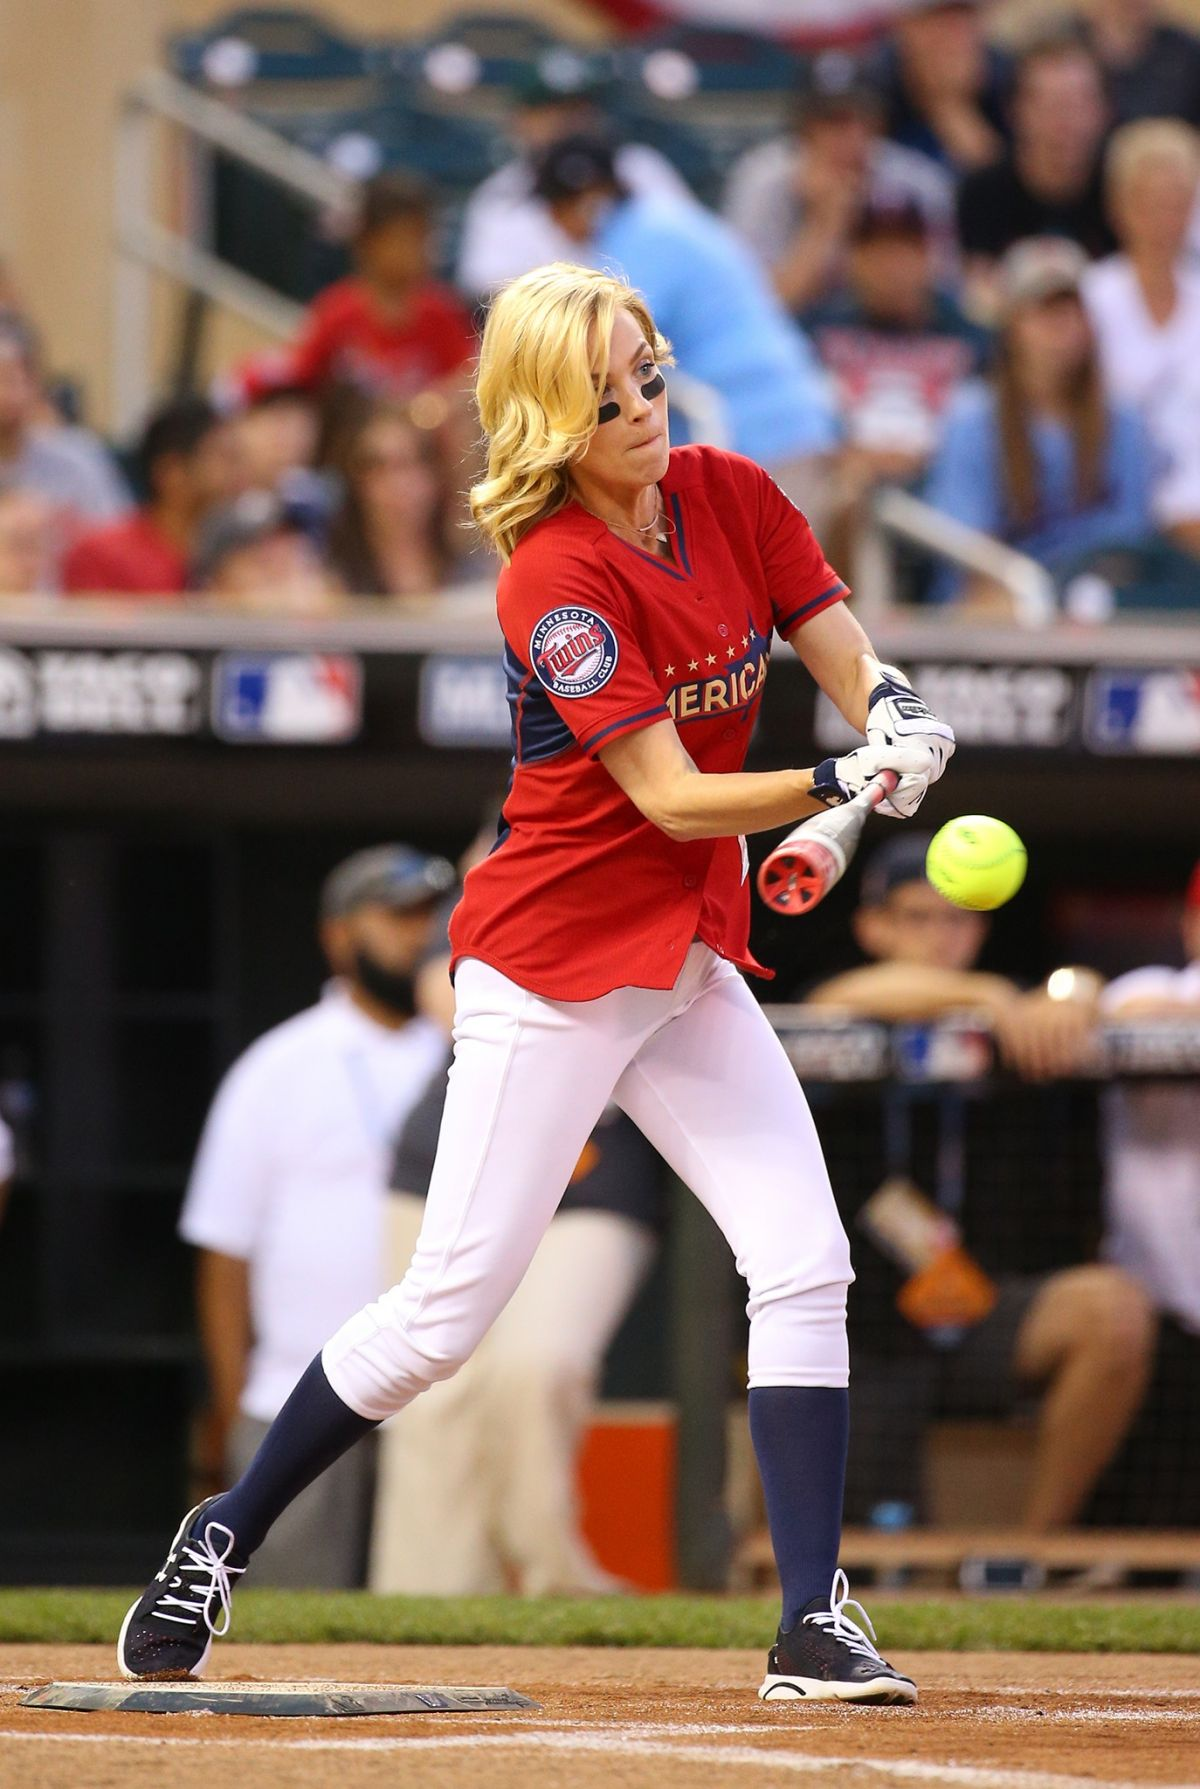 JANUARY JONES at All-star Legends and Celebrity Softball Game